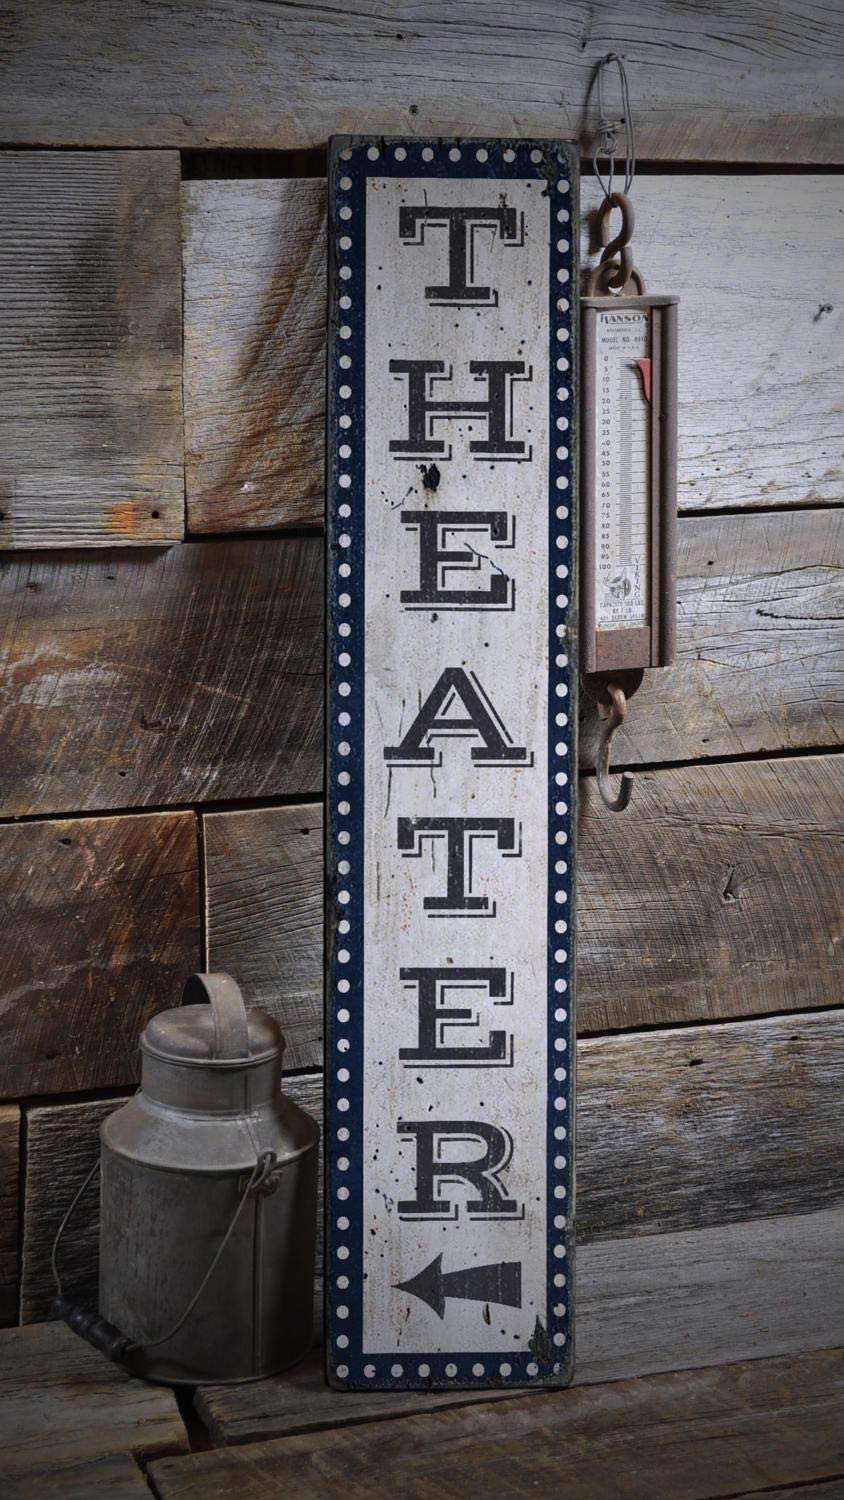 Movie Room Sign, Home Theater Sign, Vertical Theater Sign Wood Theater Sign, Home Theater Decor - Rustic Hand Made Farmhouse Rustic Retro Wooden Sign Plaque Decoration for Garden,Home Decor